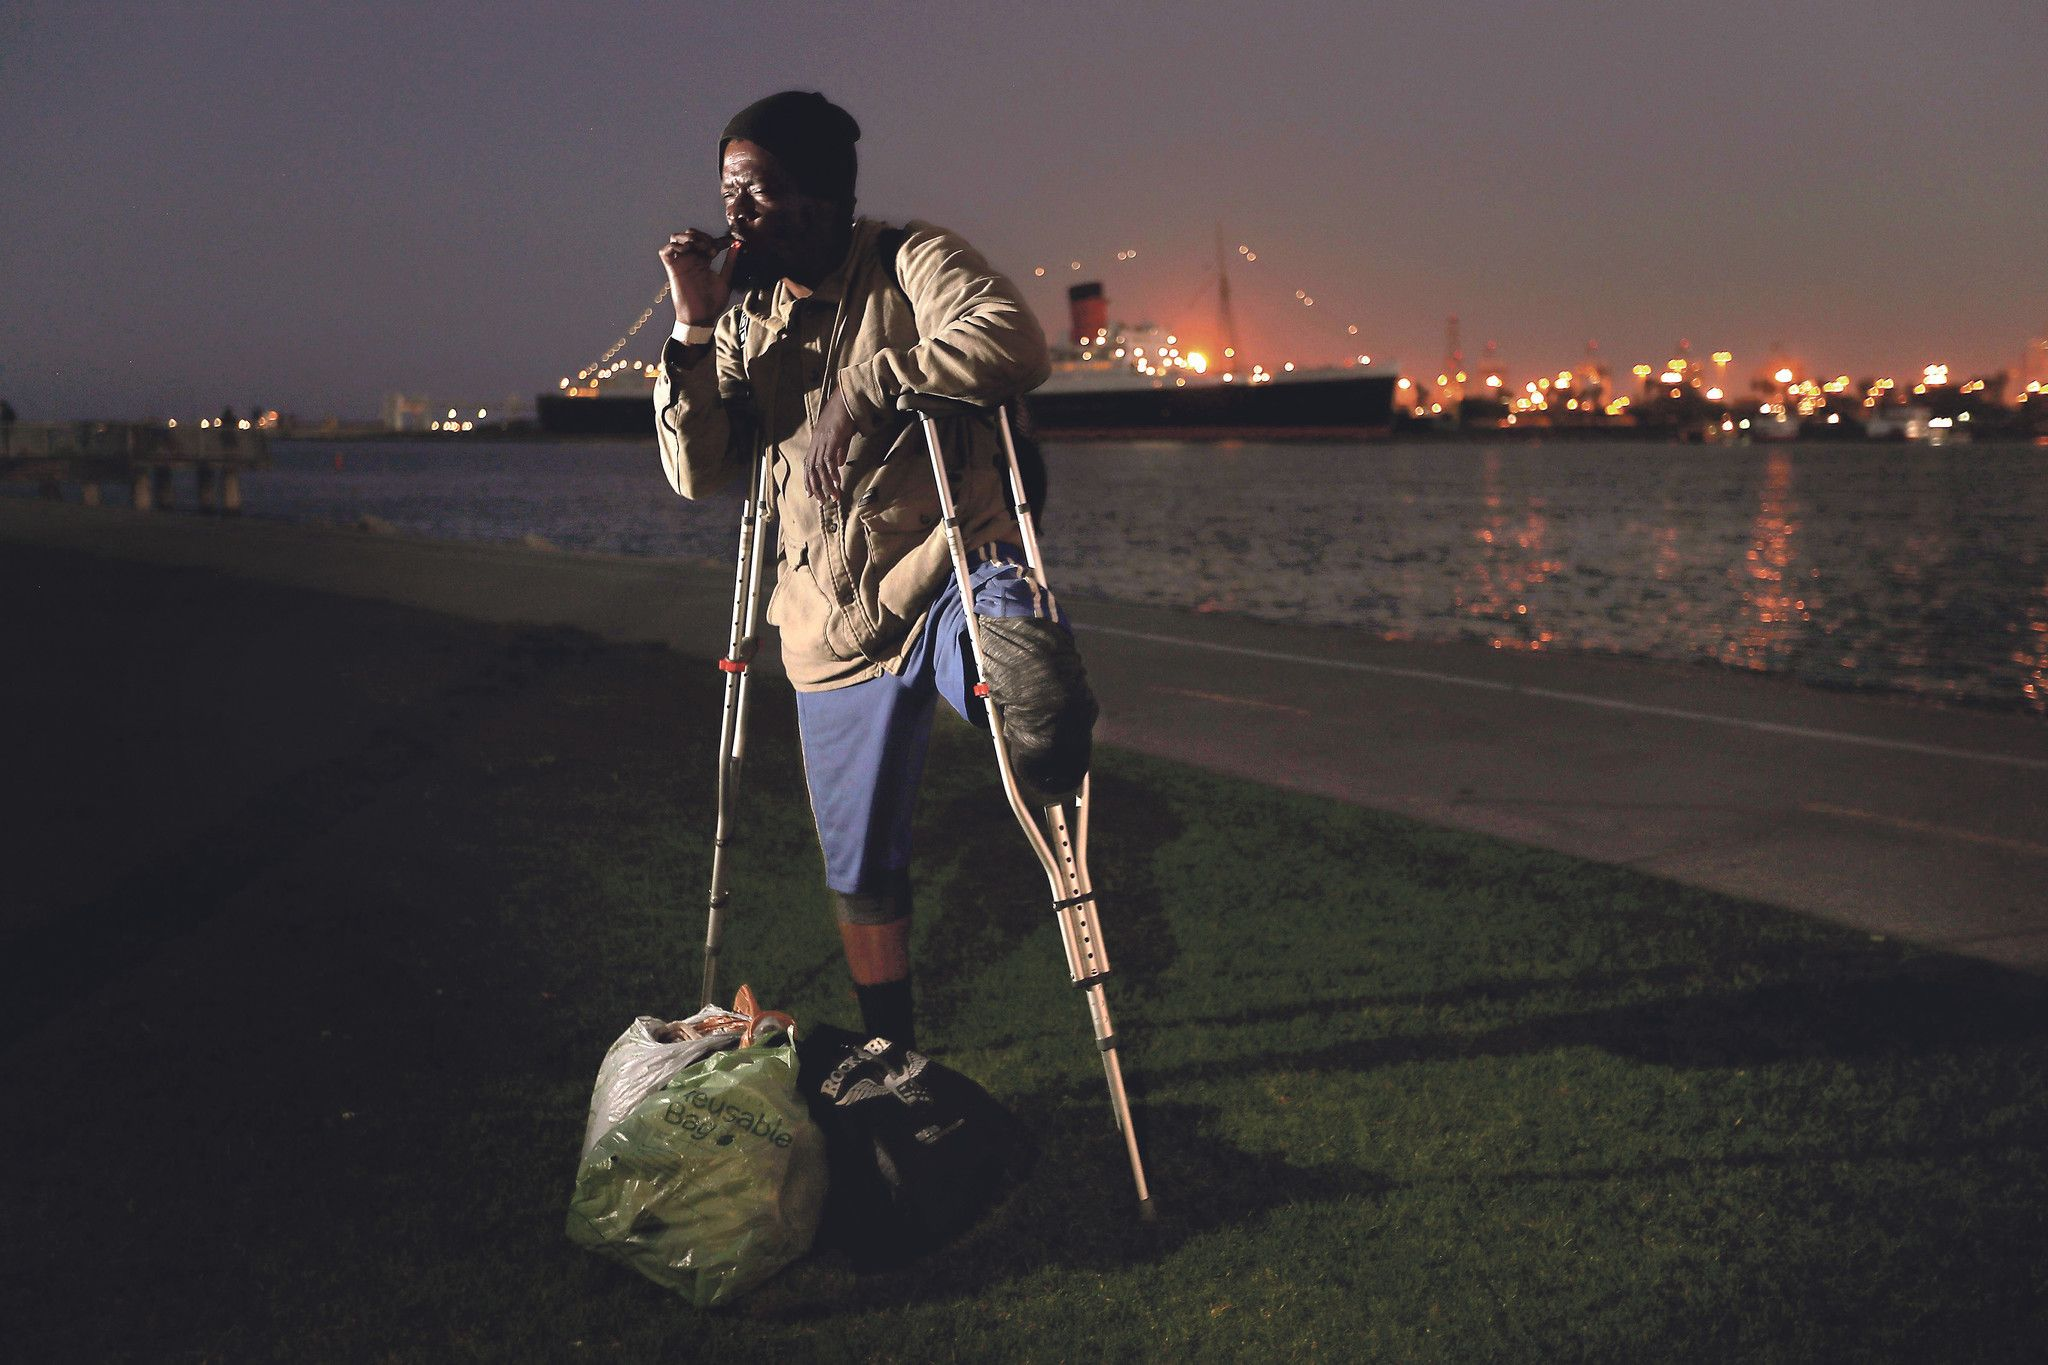 Homeless People At Almost Every L A Landmark Illustrates The Depth Of The Problem Homeless People Homeless Landmark